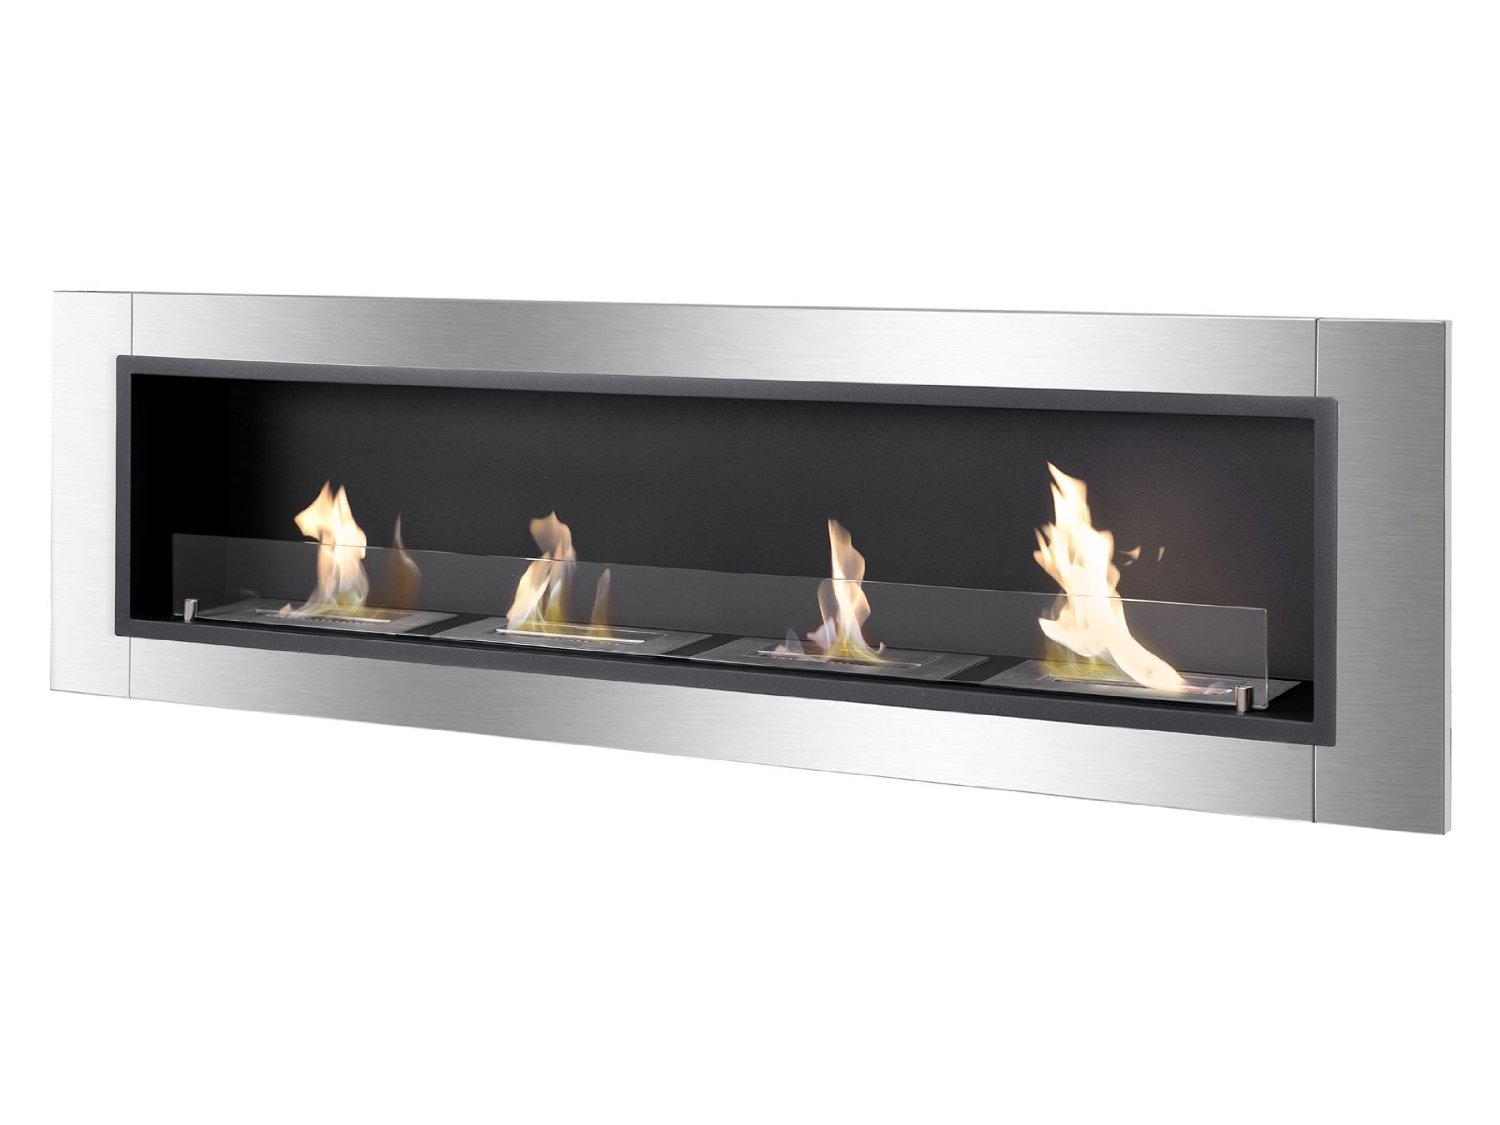 Natural gas wall mount fireplaces - Ethanol Fireplaces